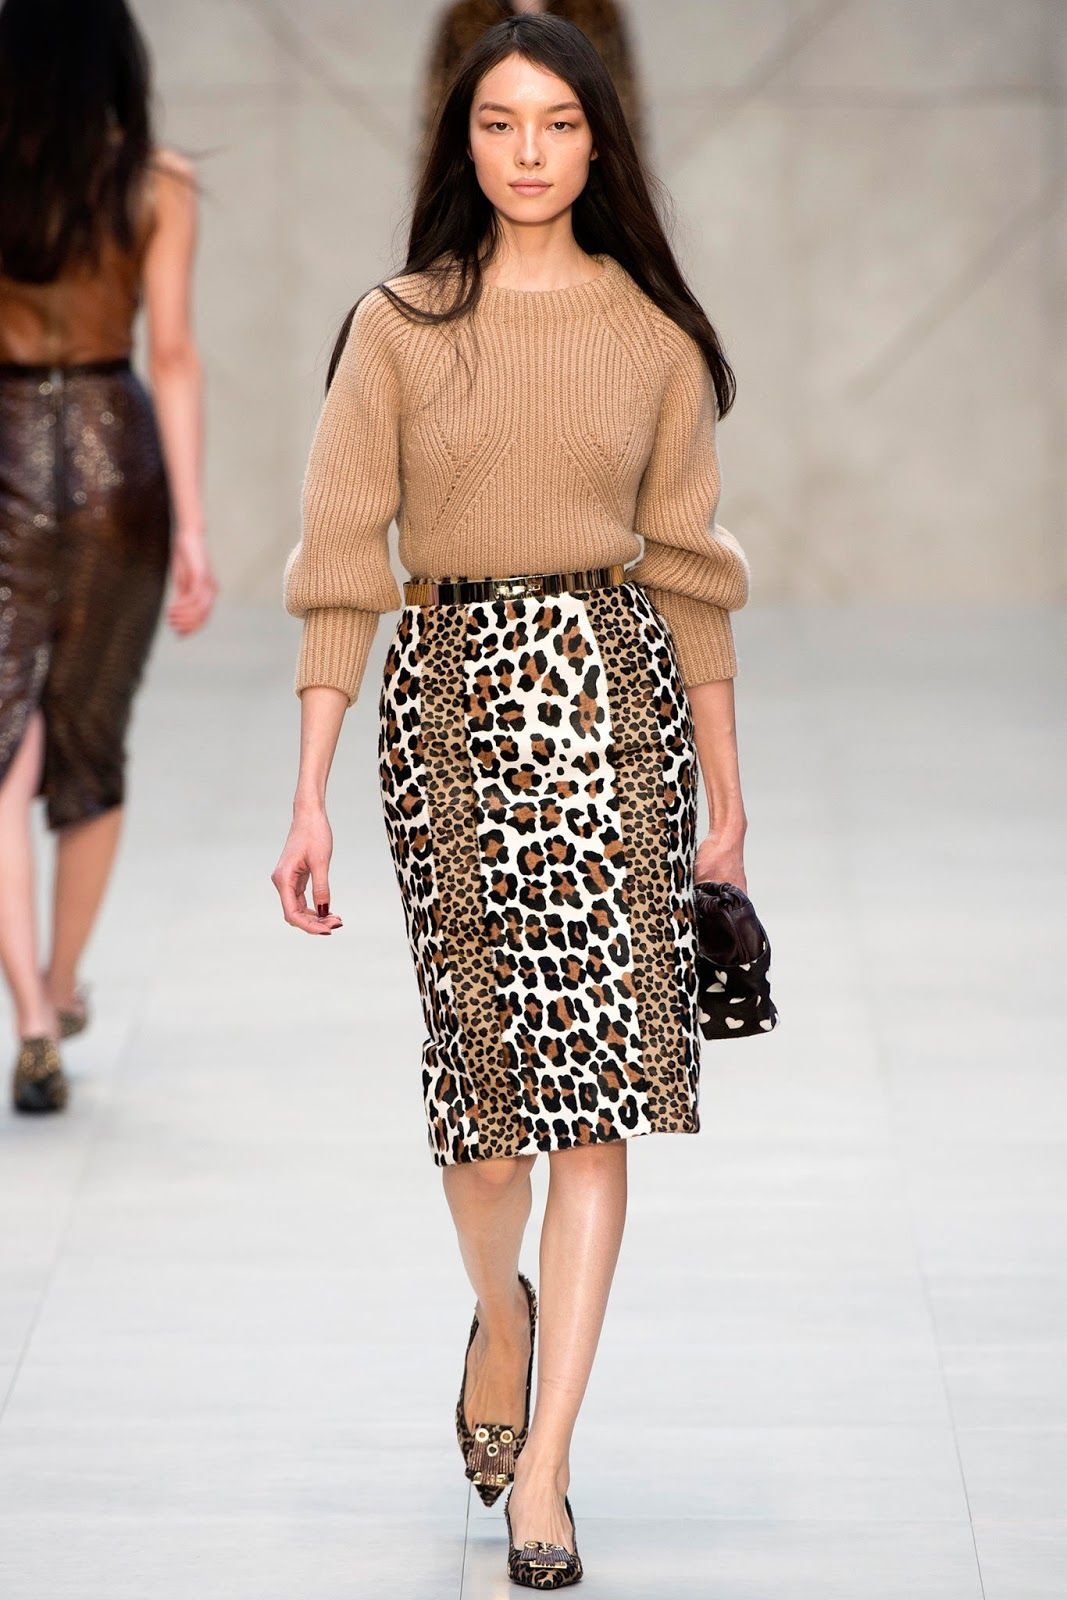 BURBERRY PRORSUM F/W 13.14 LONDON